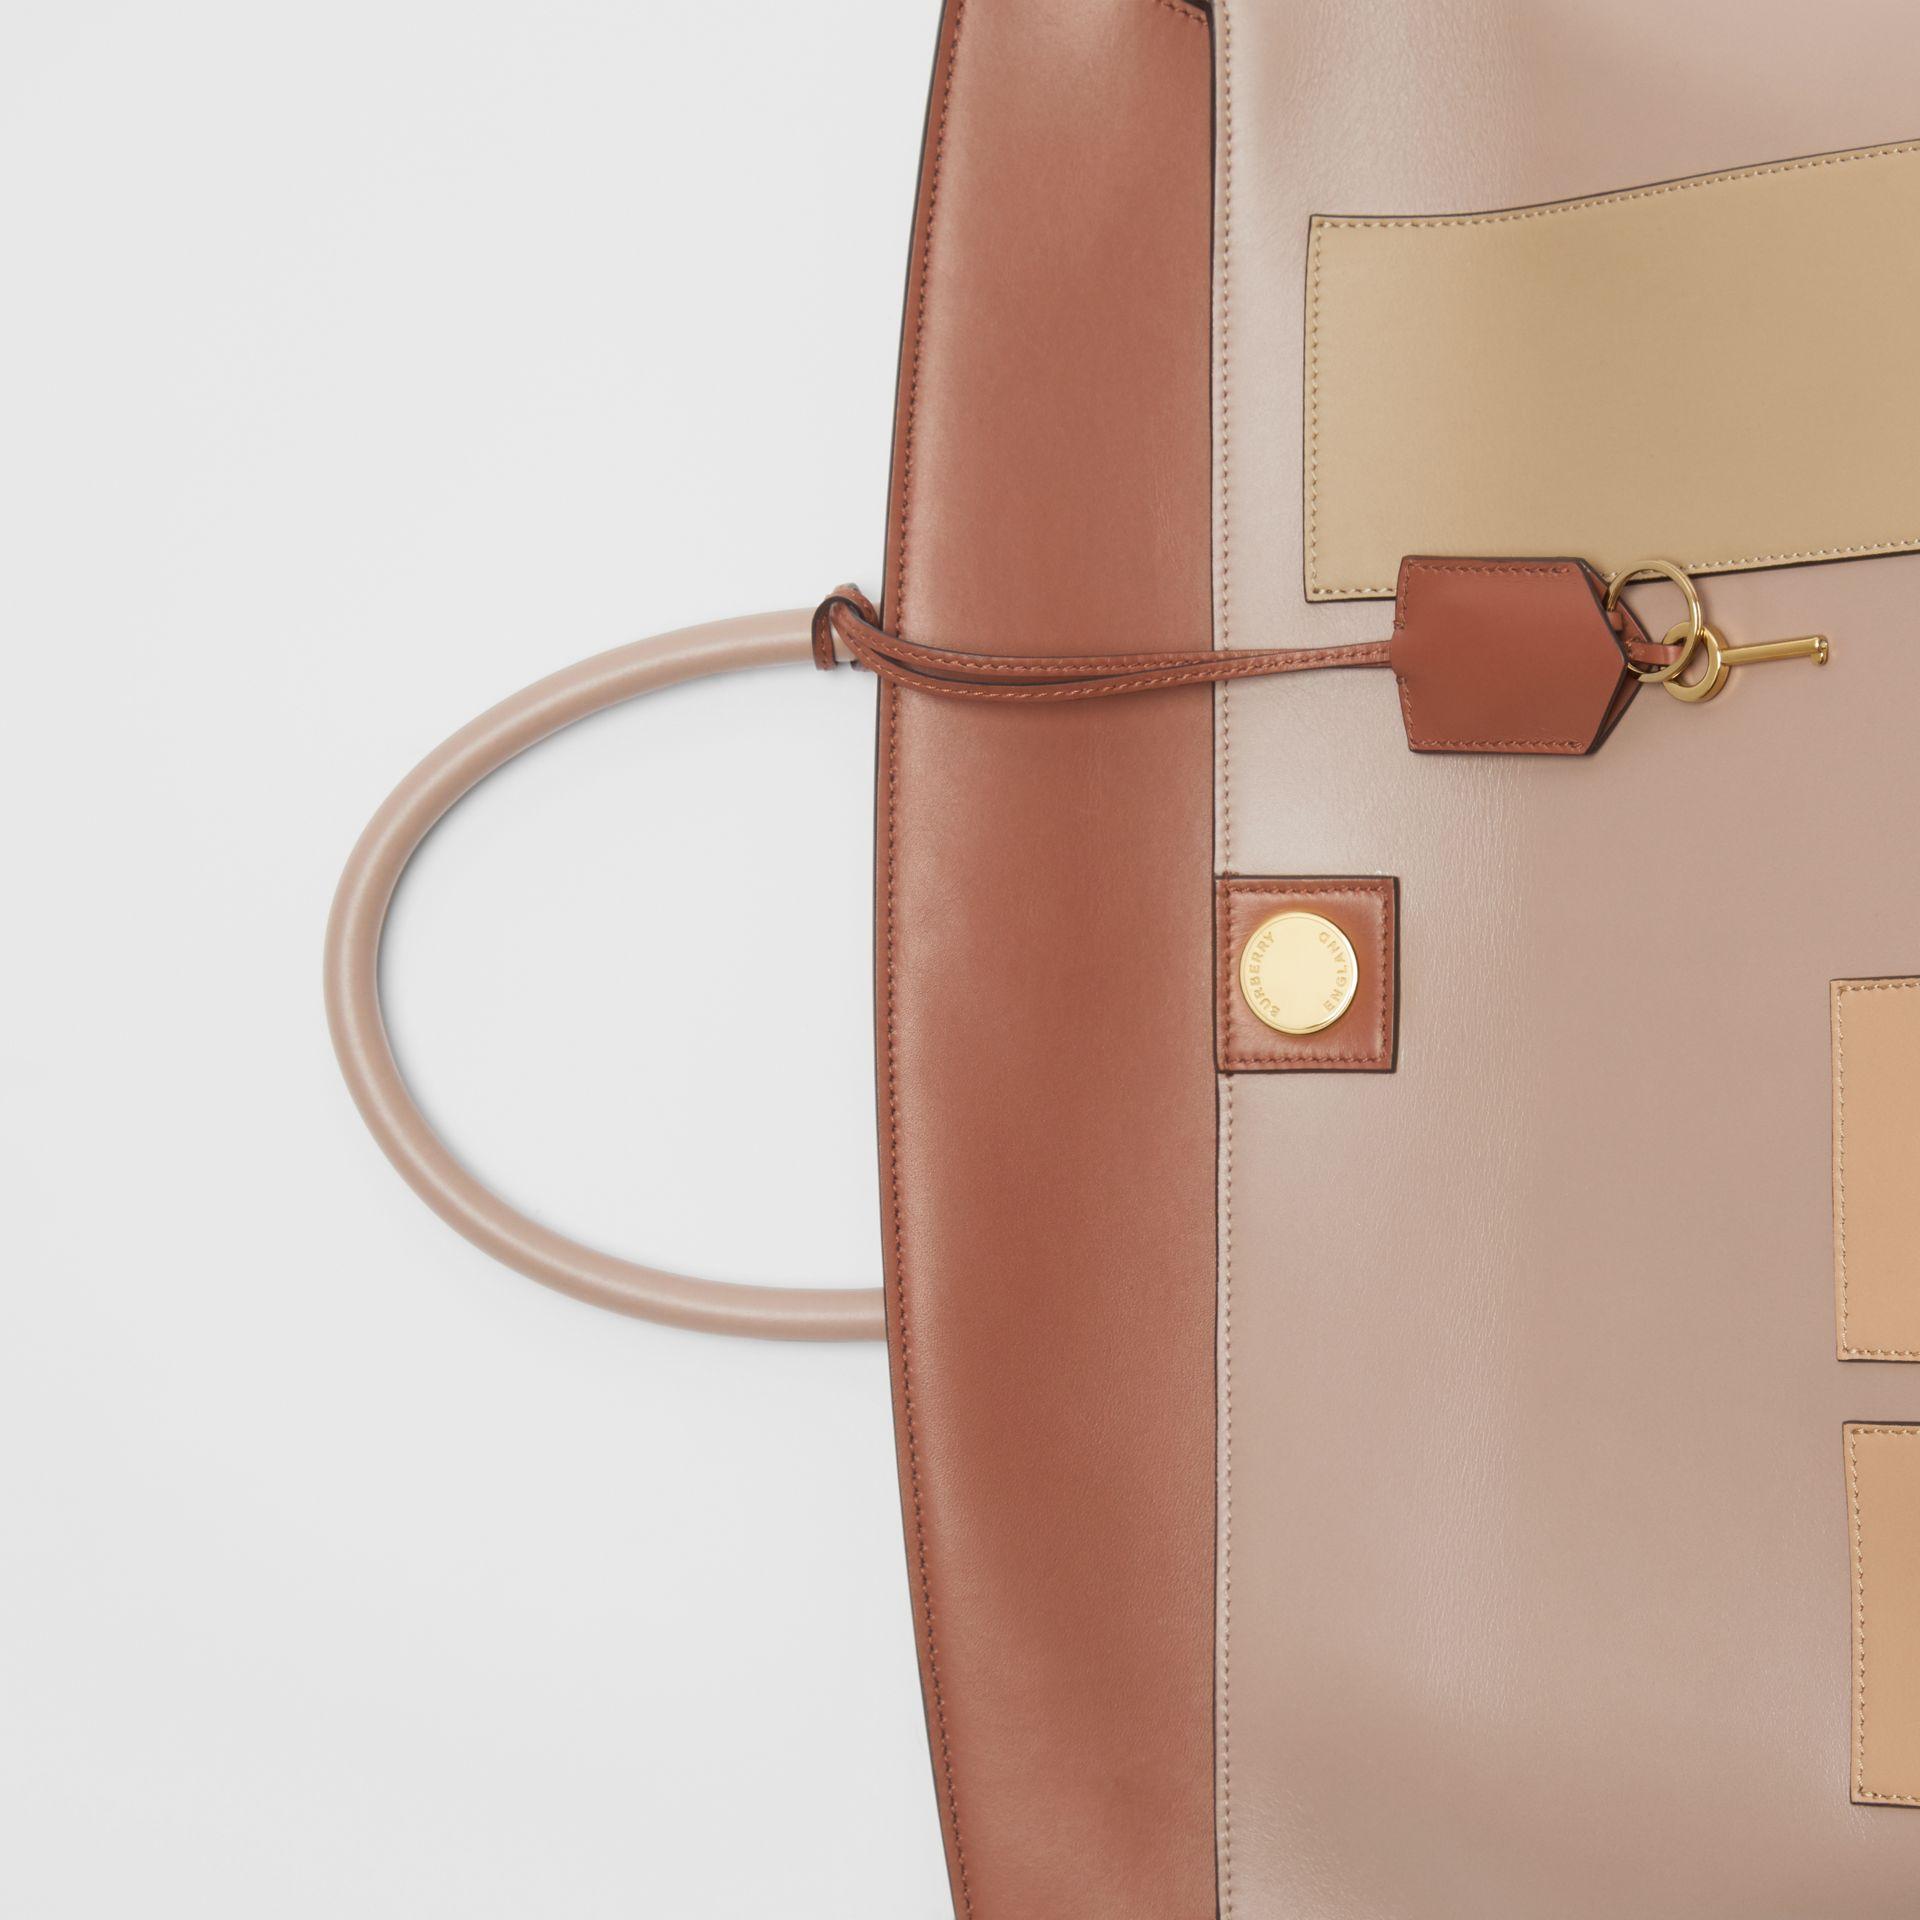 Leather Society Top Handle Bag in Pale Mink - Women | Burberry United Kingdom - gallery image 1